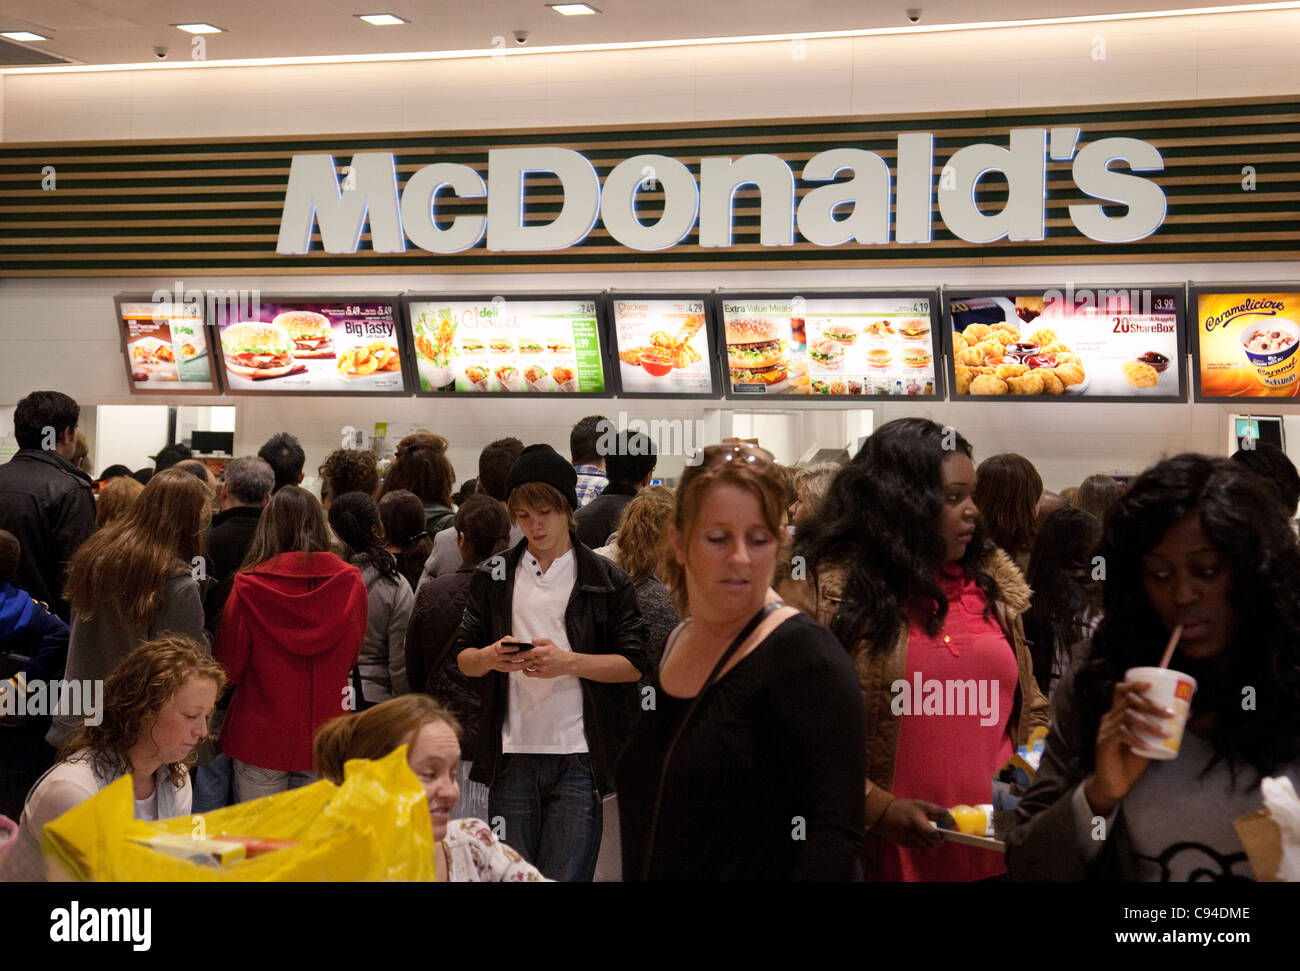 People eating at McDonalds, westfield shopping centre UK - Stock Image